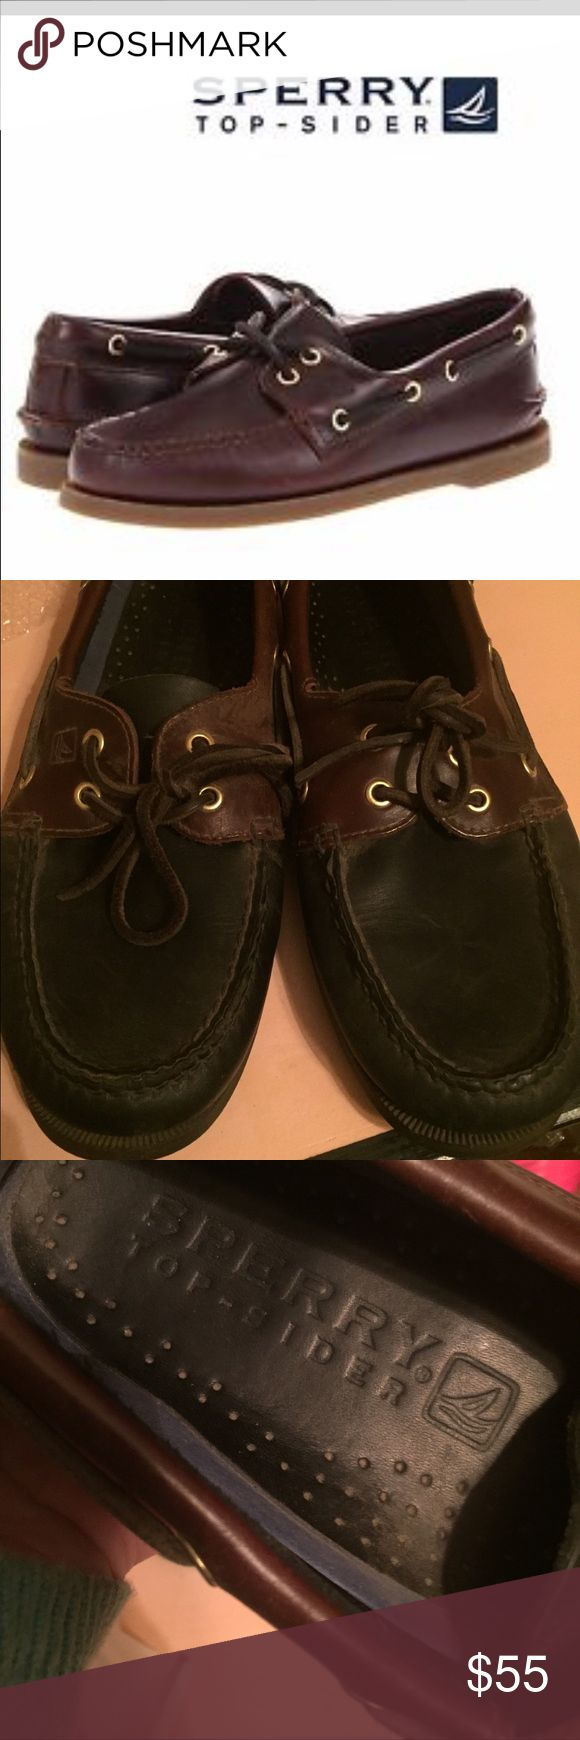 MENS SPERRY TOP SIDER SHOES LIKE NEW. MAYBE WORN ONCE Sperry Top-Sider Shoes Boat Shoes